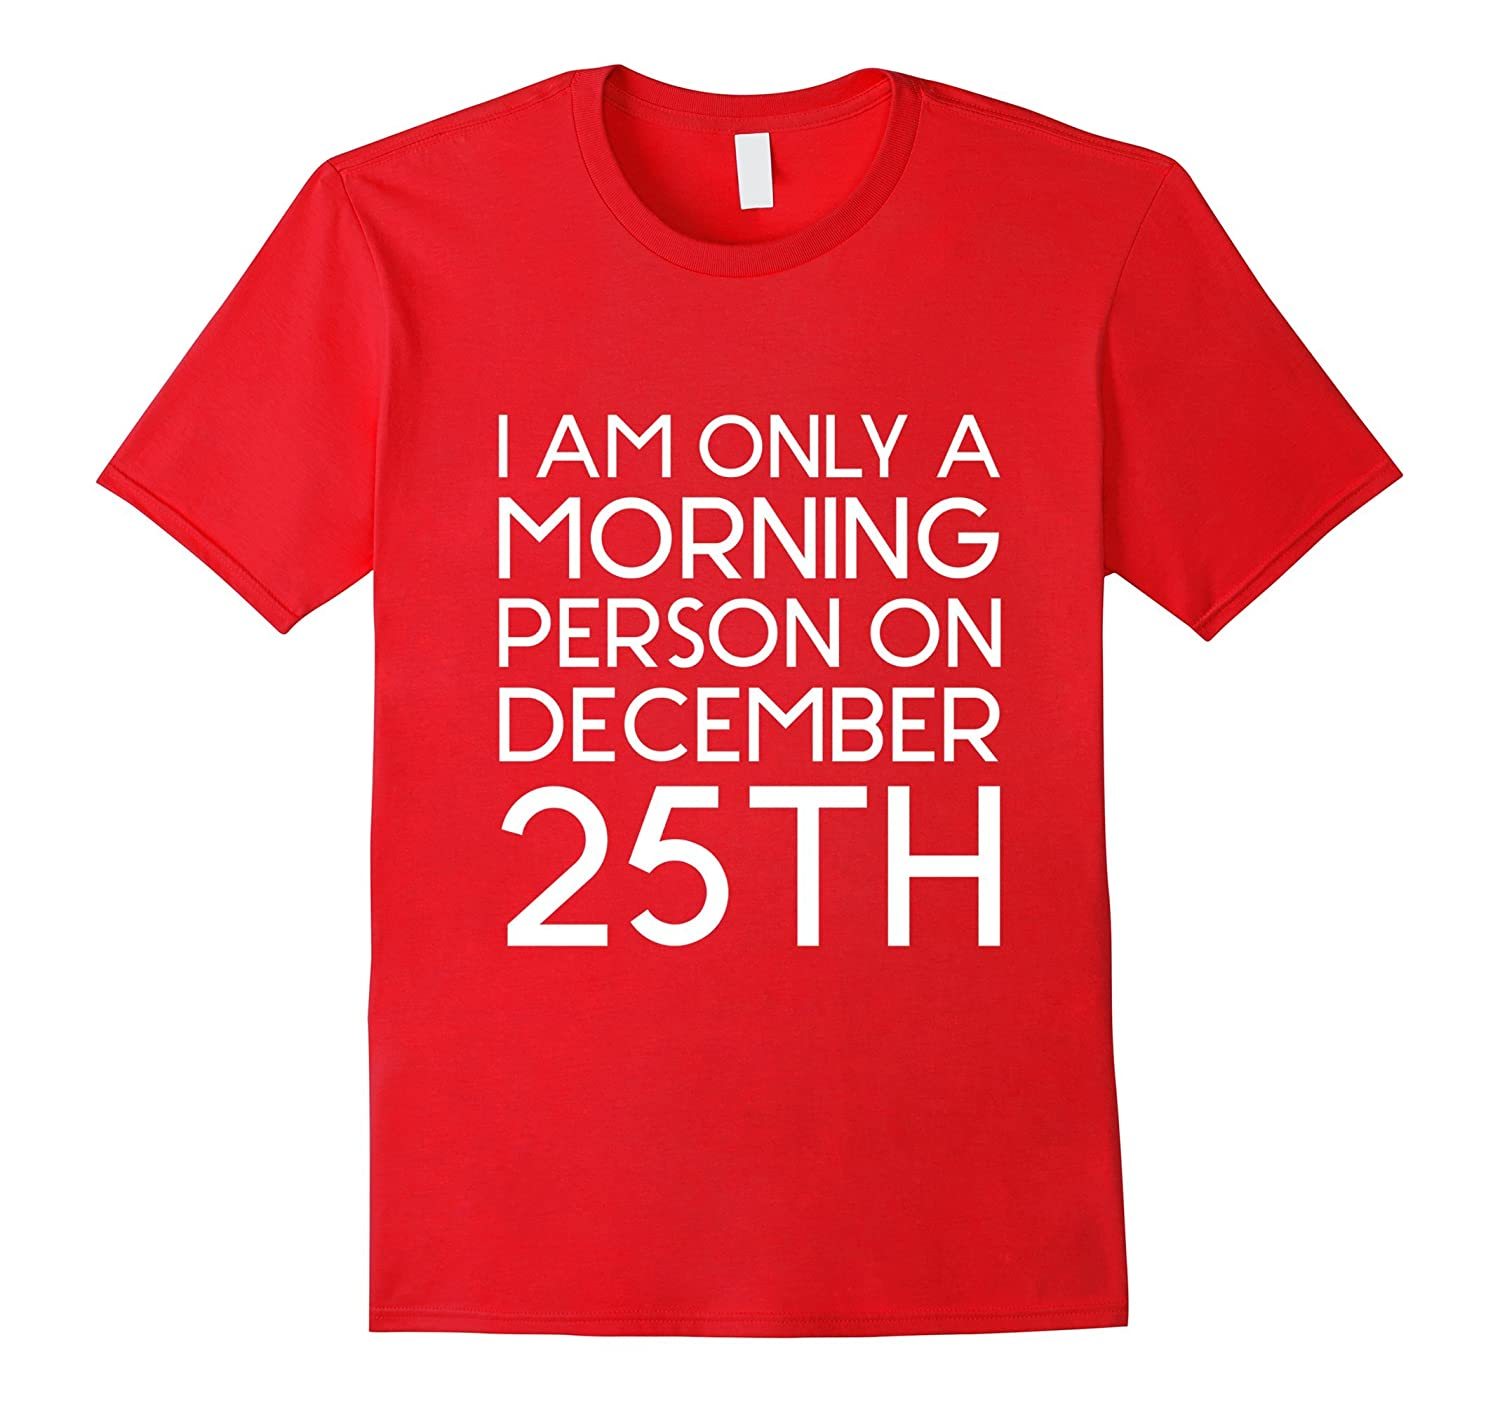 I am only a morning person on December 25th T-shirt-BN